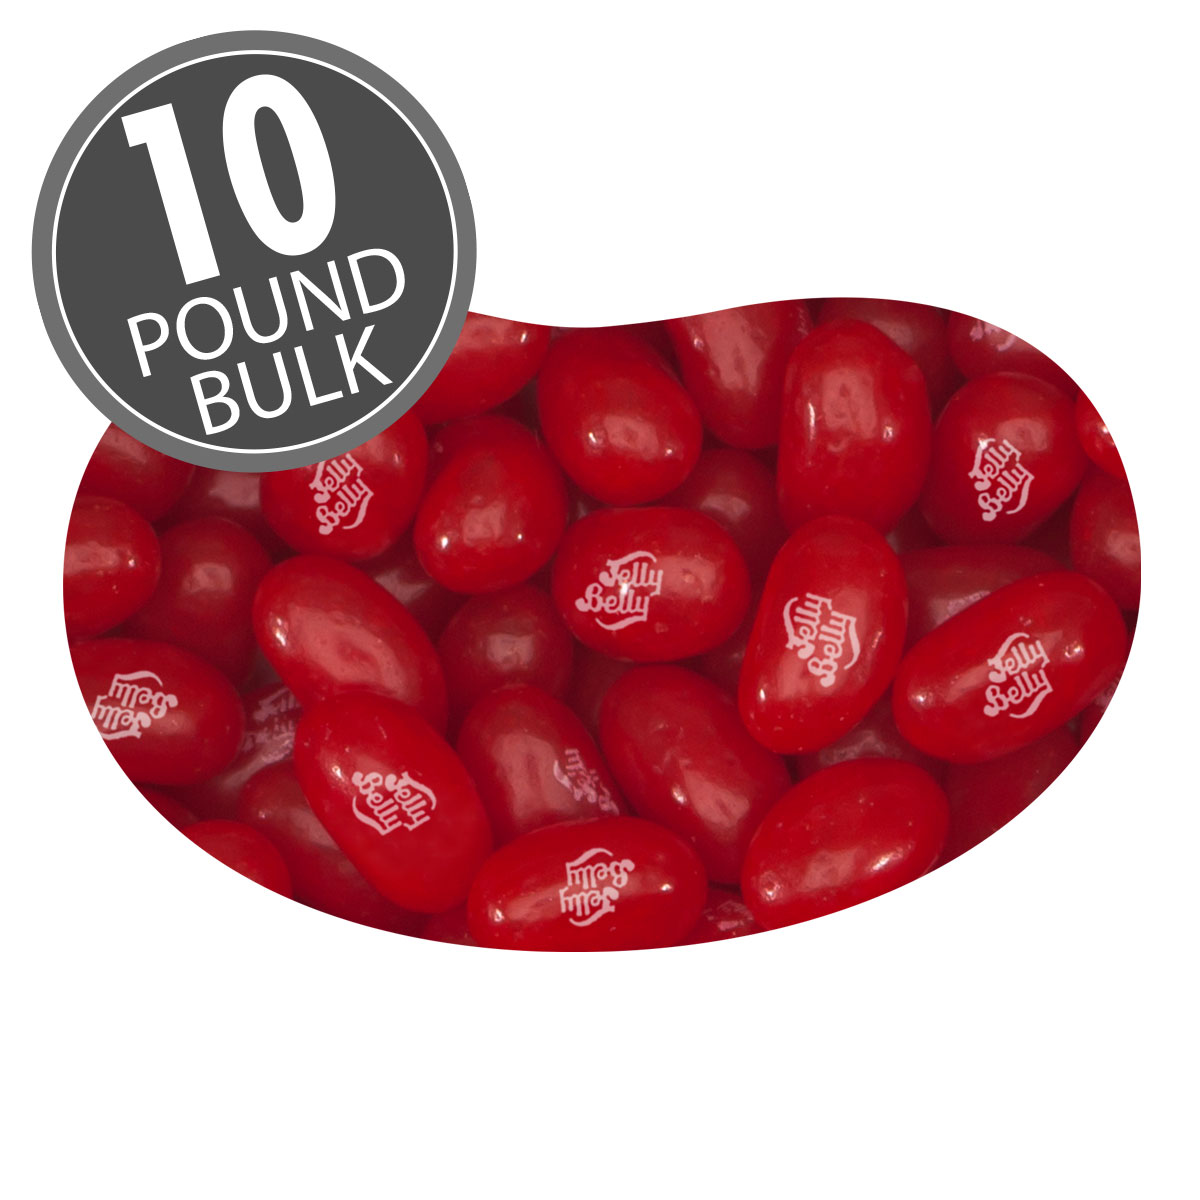 Sour Cherry Jelly Beans - 10 lbs bulk